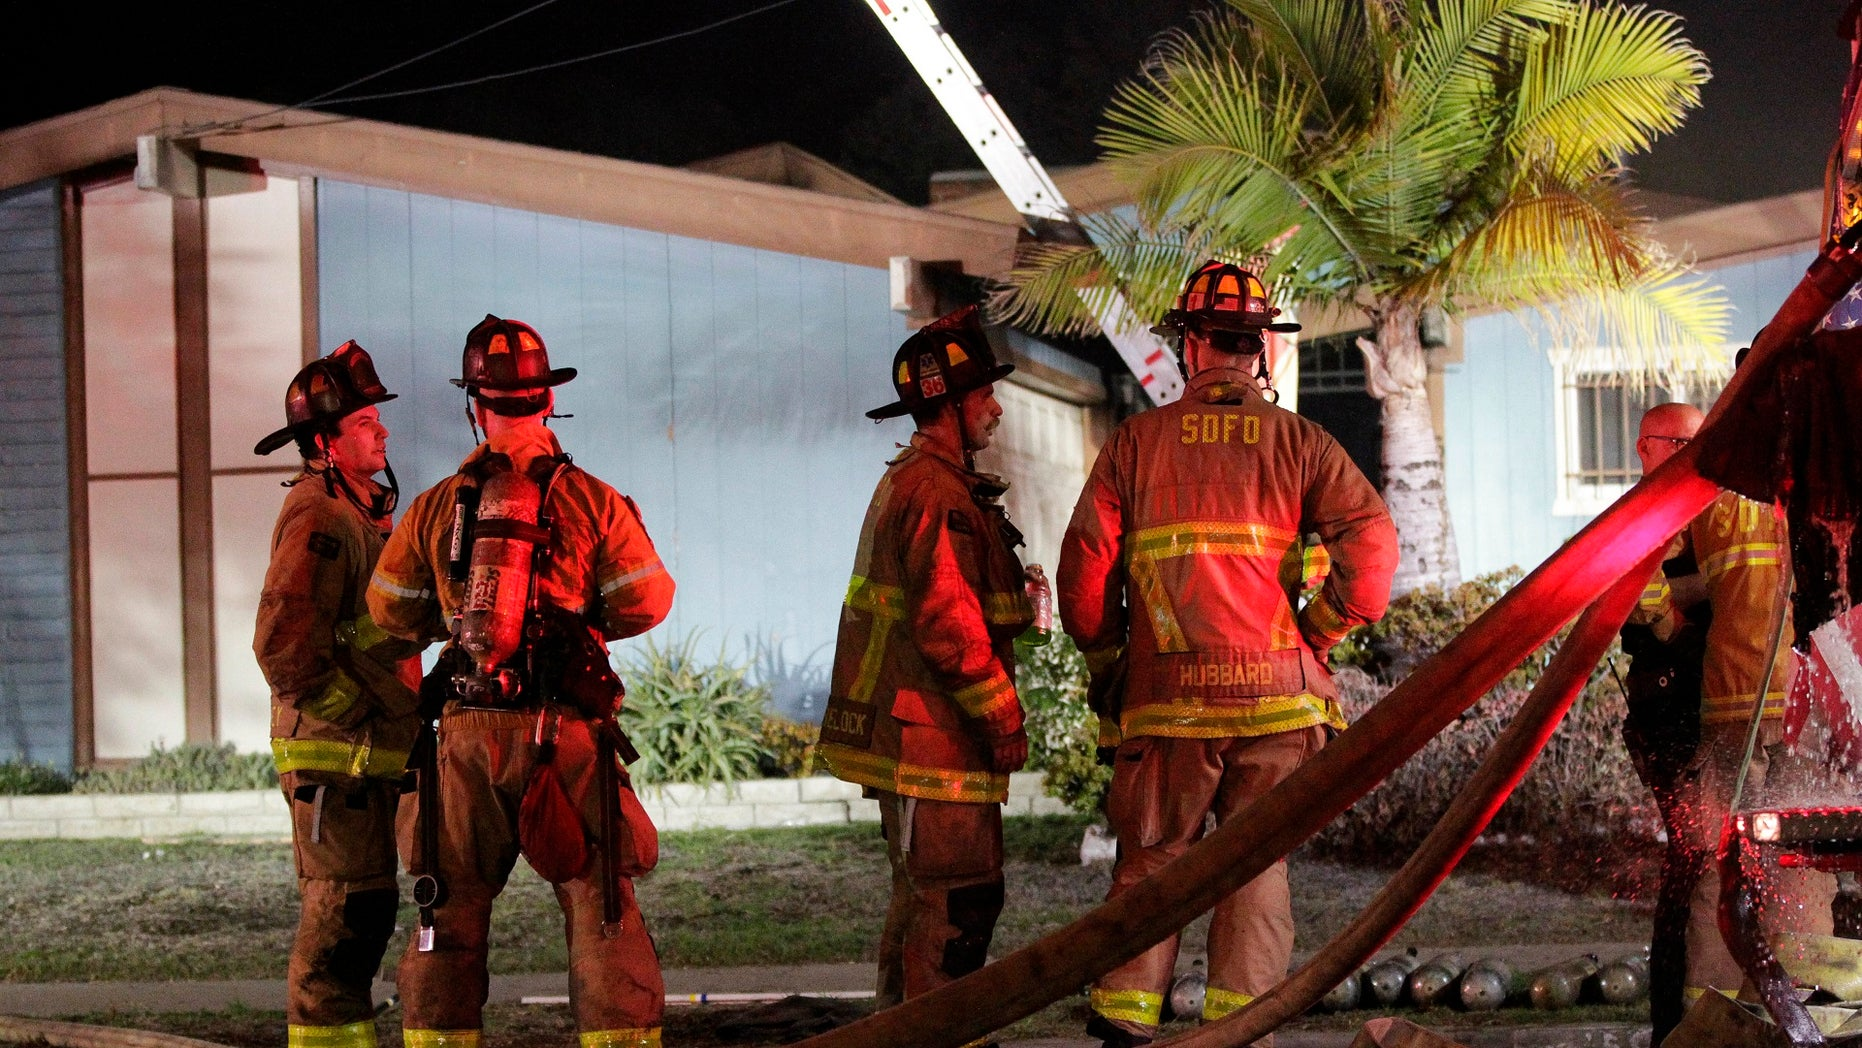 Firefighters gather outside a San Diego house where a small plane crashed, Dec. 9, 2017.